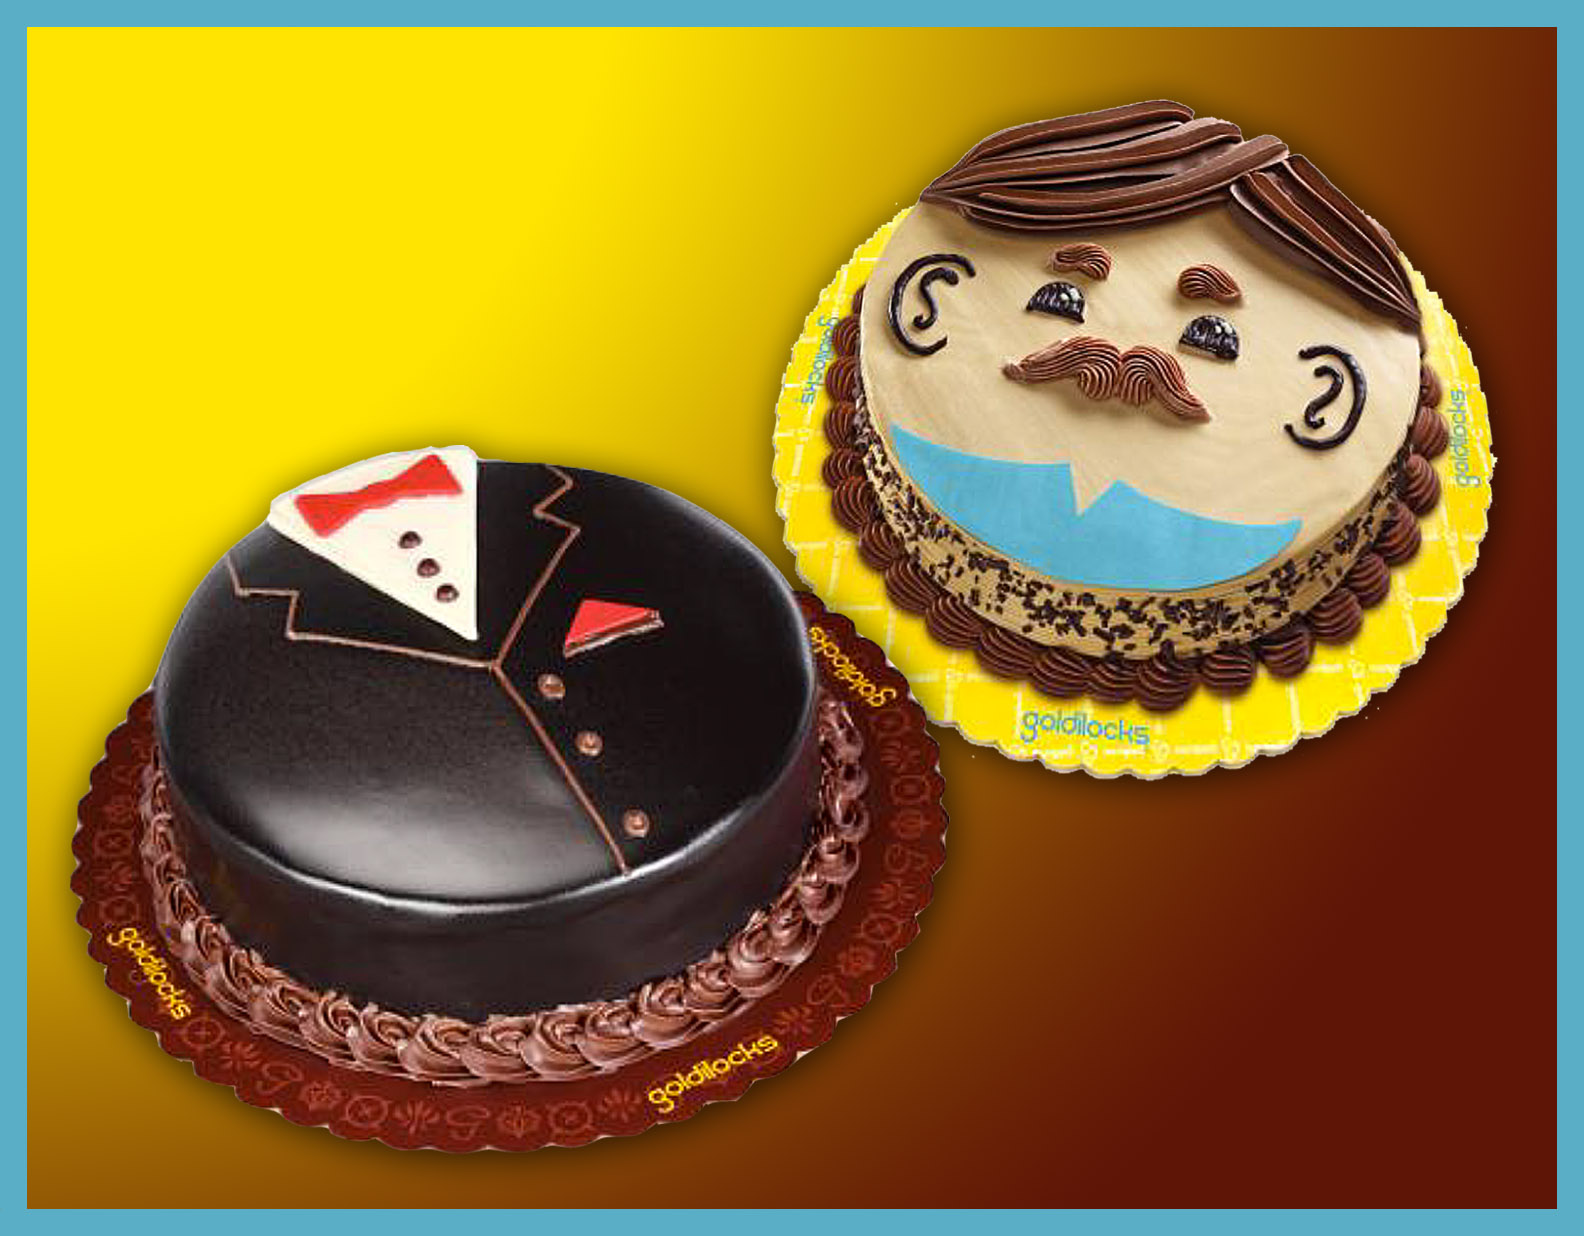 Goldilocks celebrates fathers day with special sweet treat